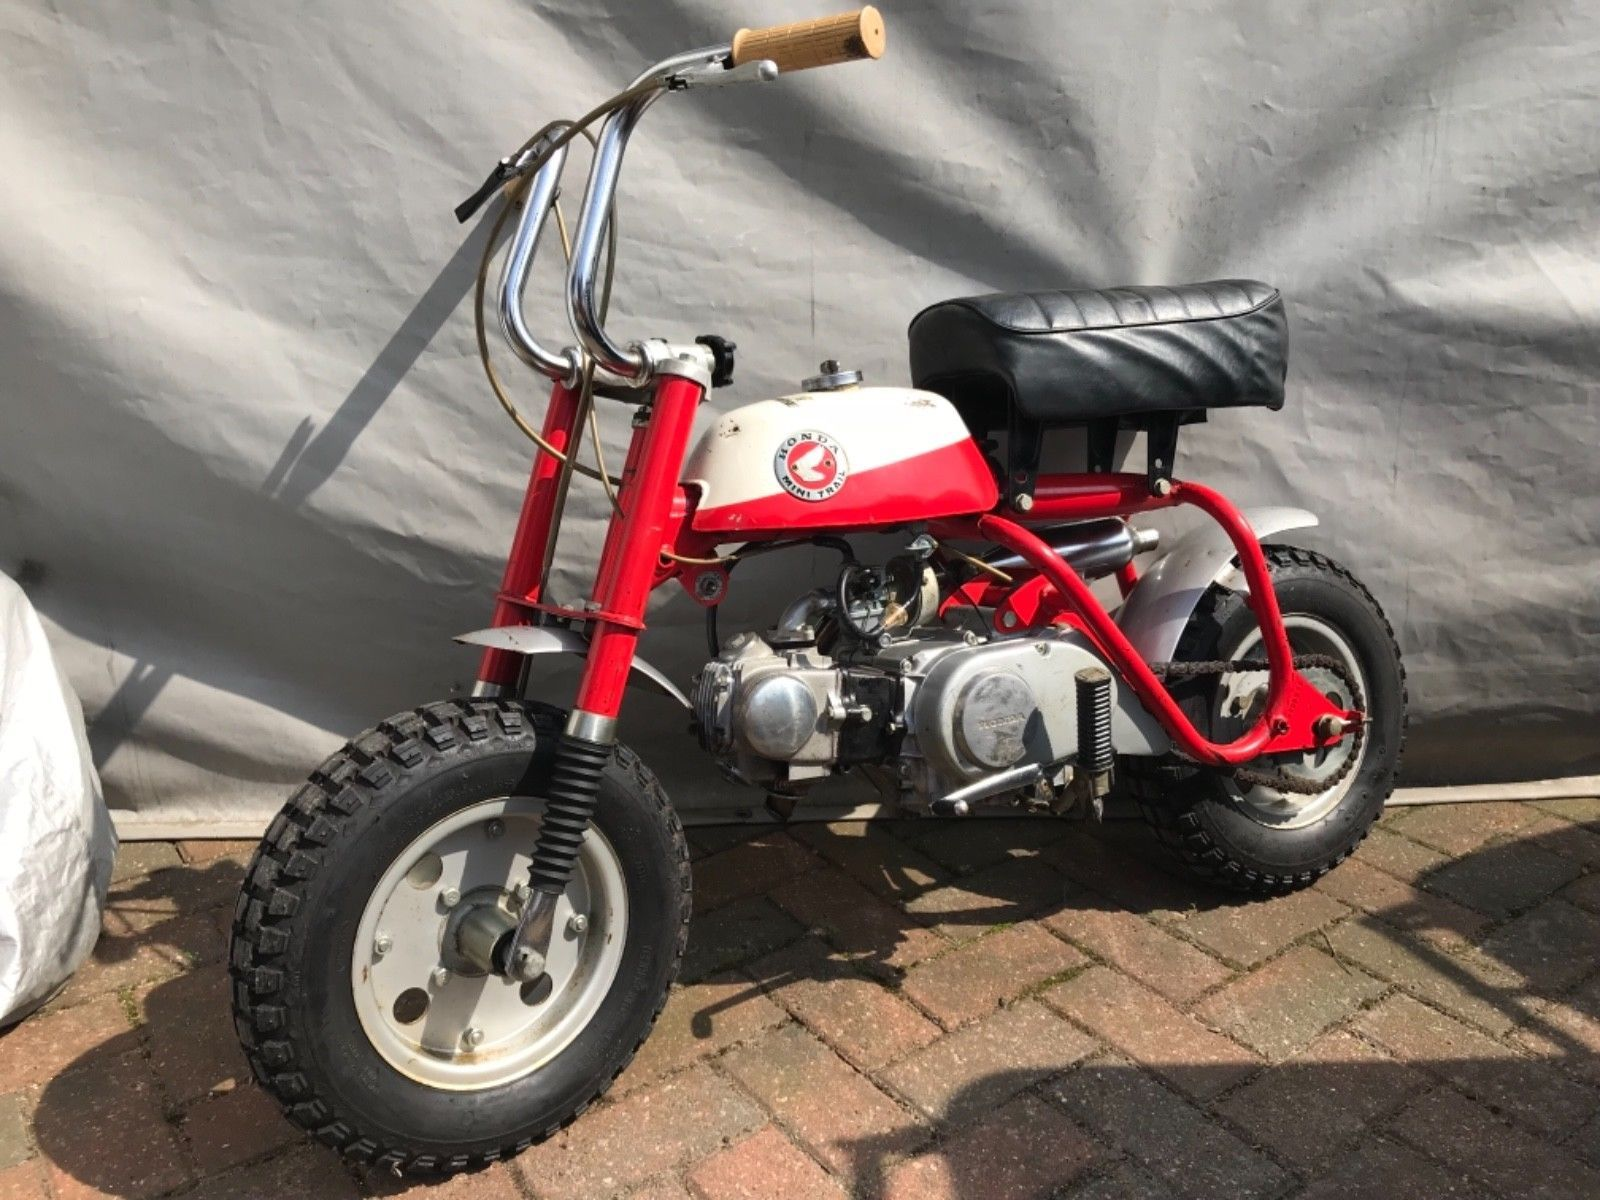 ebay honda z50a ko monkey bike project 1960s motorcycles [ 1600 x 1200 Pixel ]